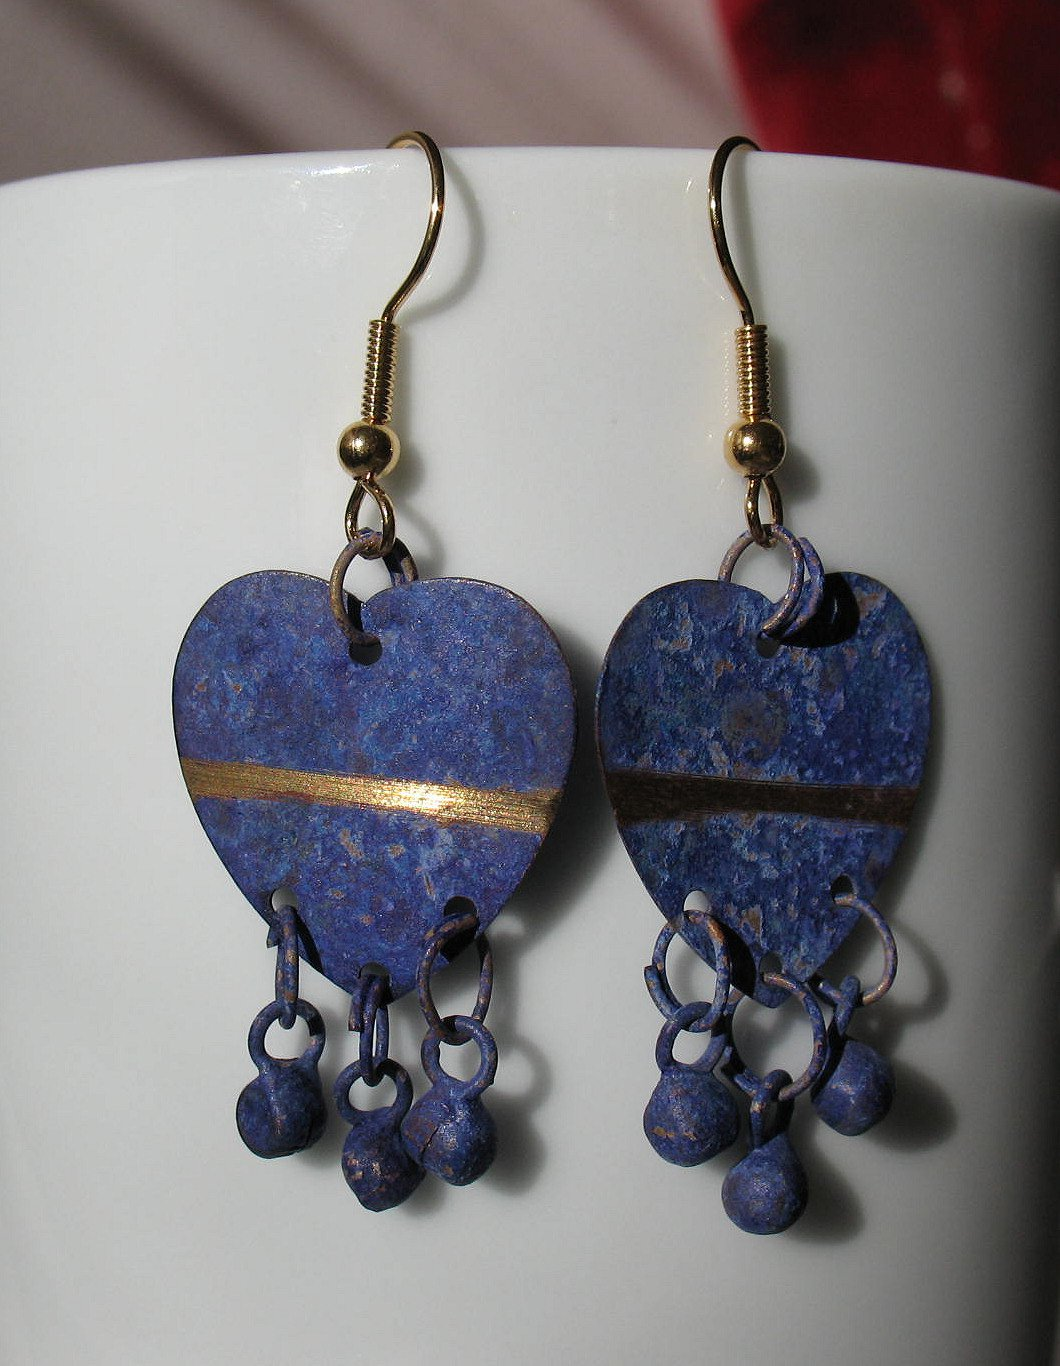 Purple Heart Pierced Earrings Upcycled from Vintage Jewelry - Gold Tone Handmade